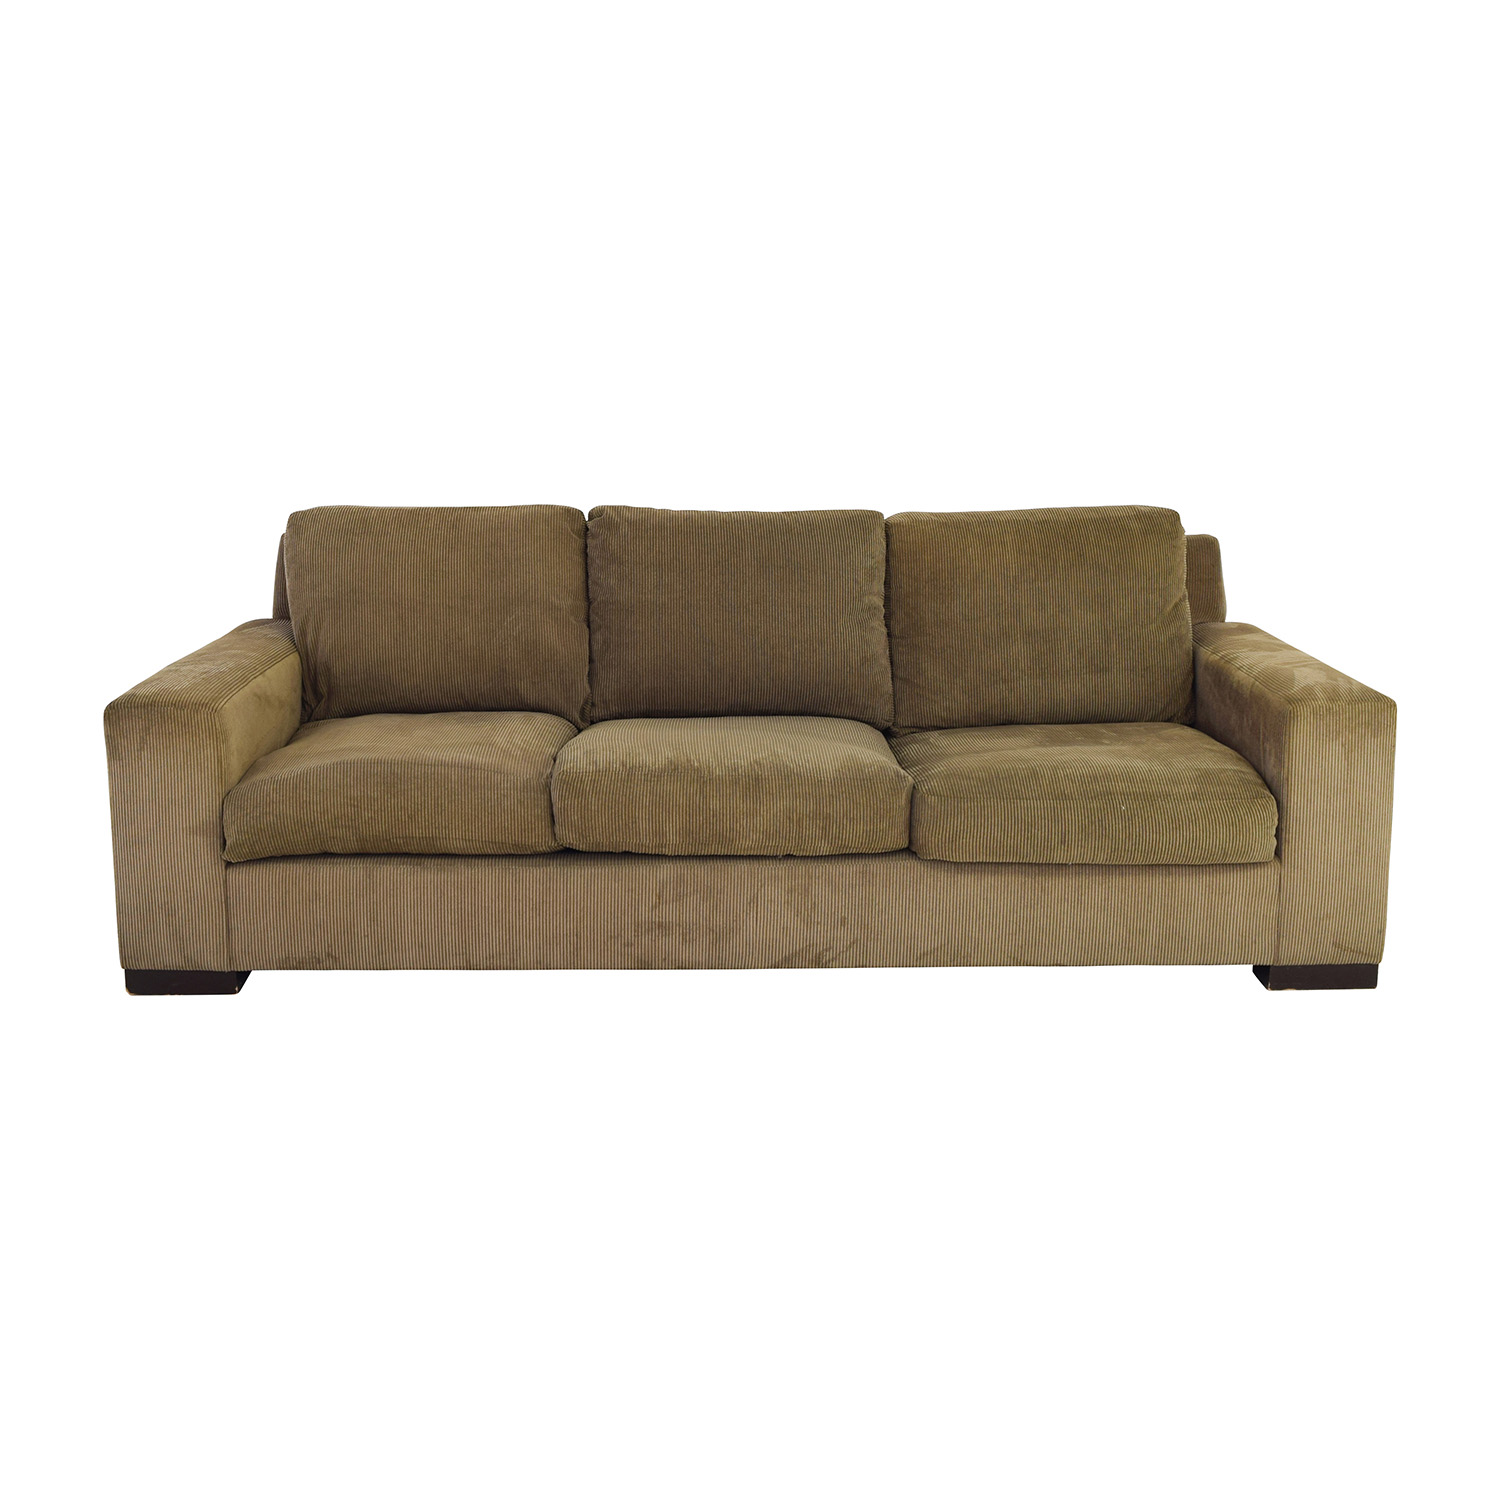 Z Gallerie Z Gallerie Dark Forest Pinstripe Three Seat Sofa Nj ...